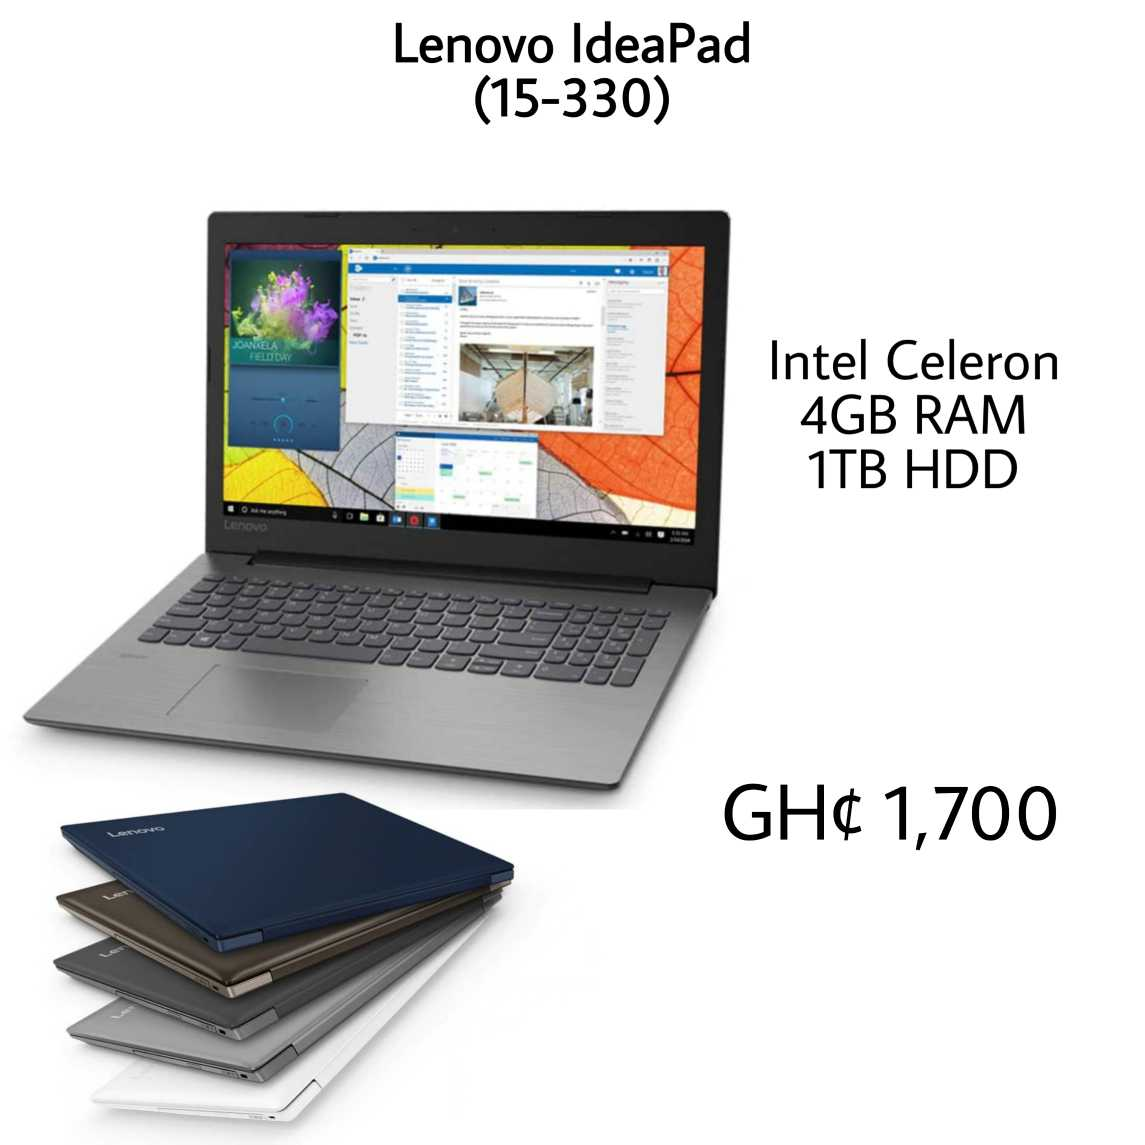 price of lenovo ideapad 330 in ghana